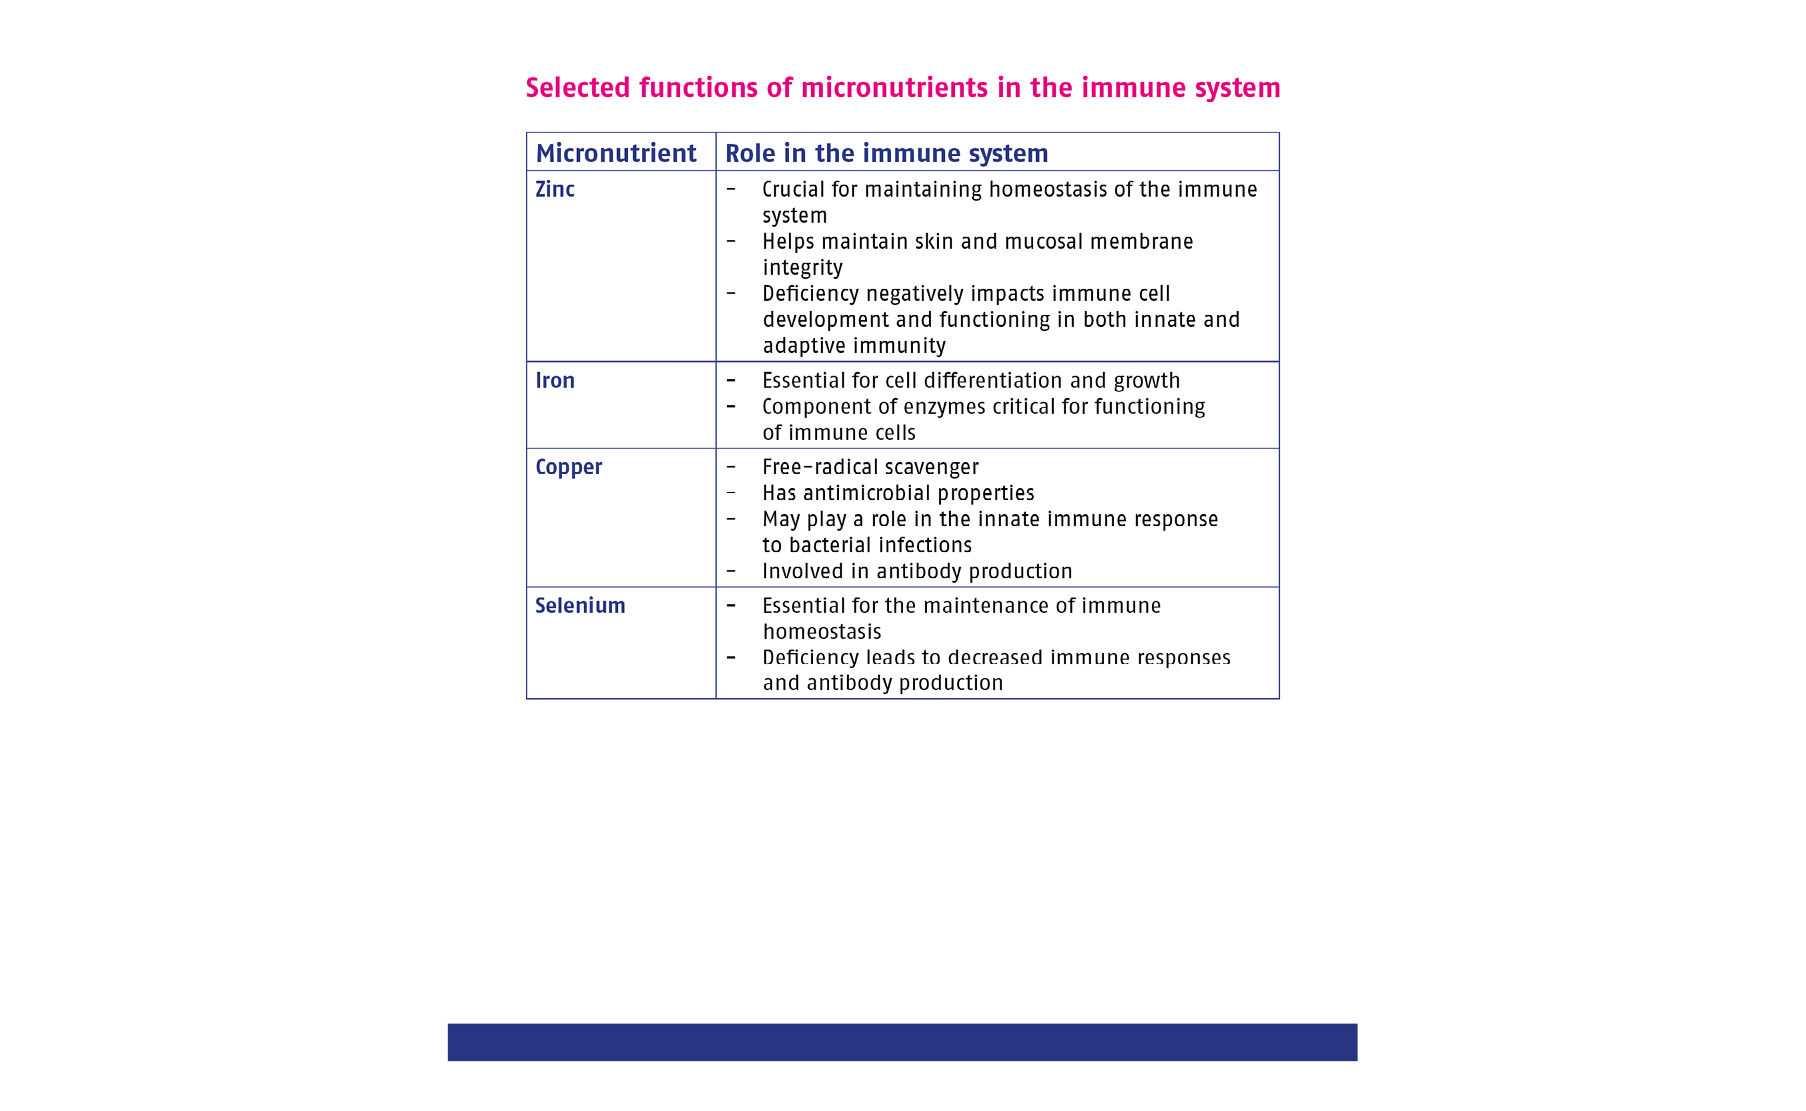 Selected functions of micronutrients in the immune system